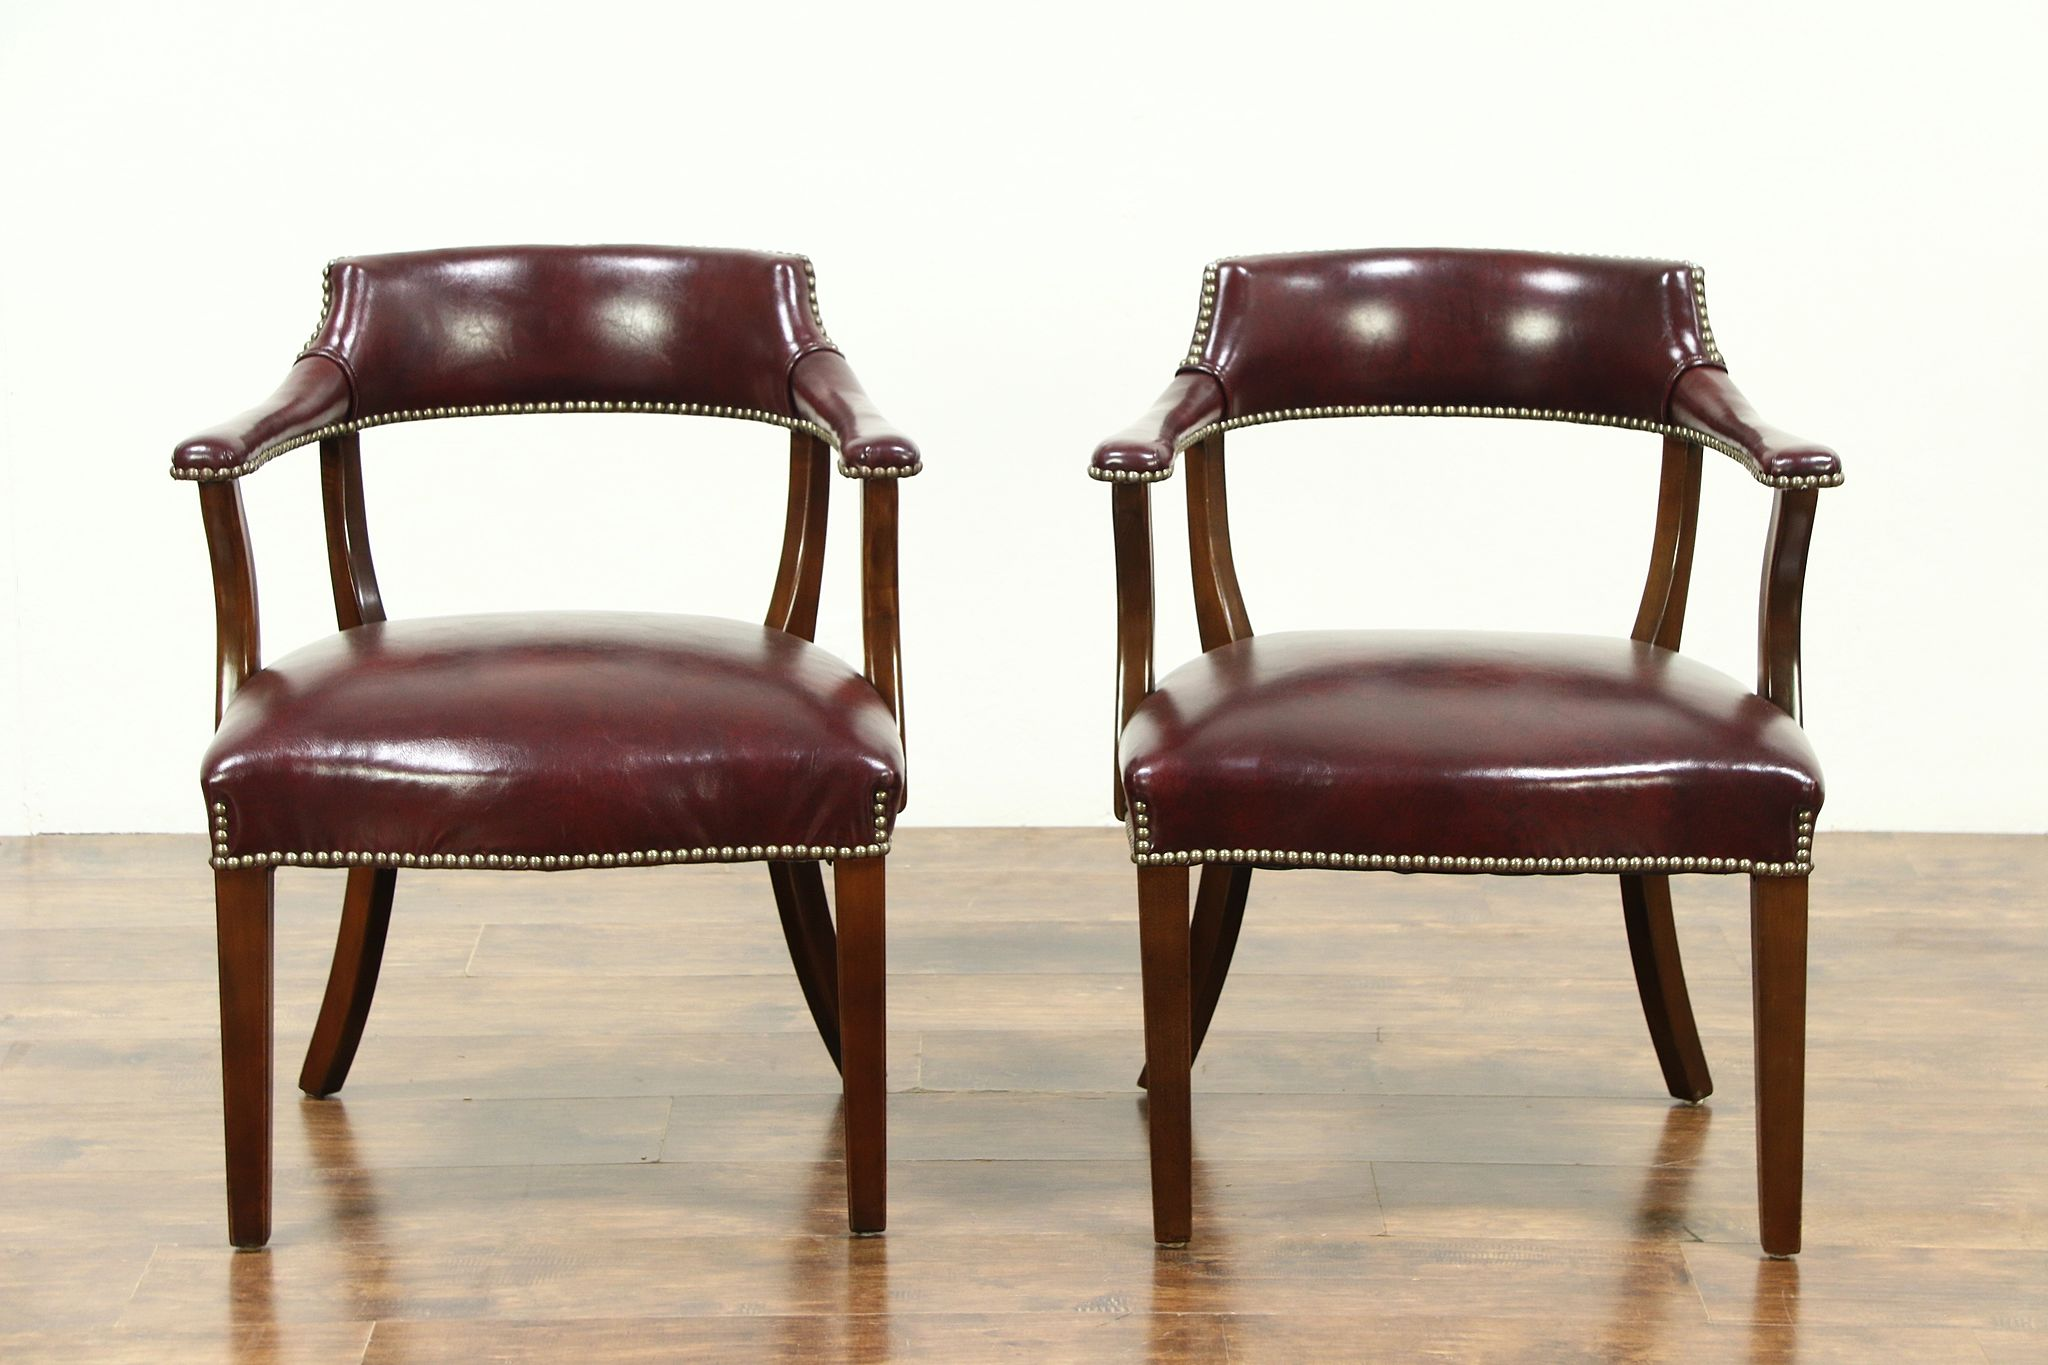 Sold Pair Of Bank Of London Vintage Library Or Office Chairs Faux